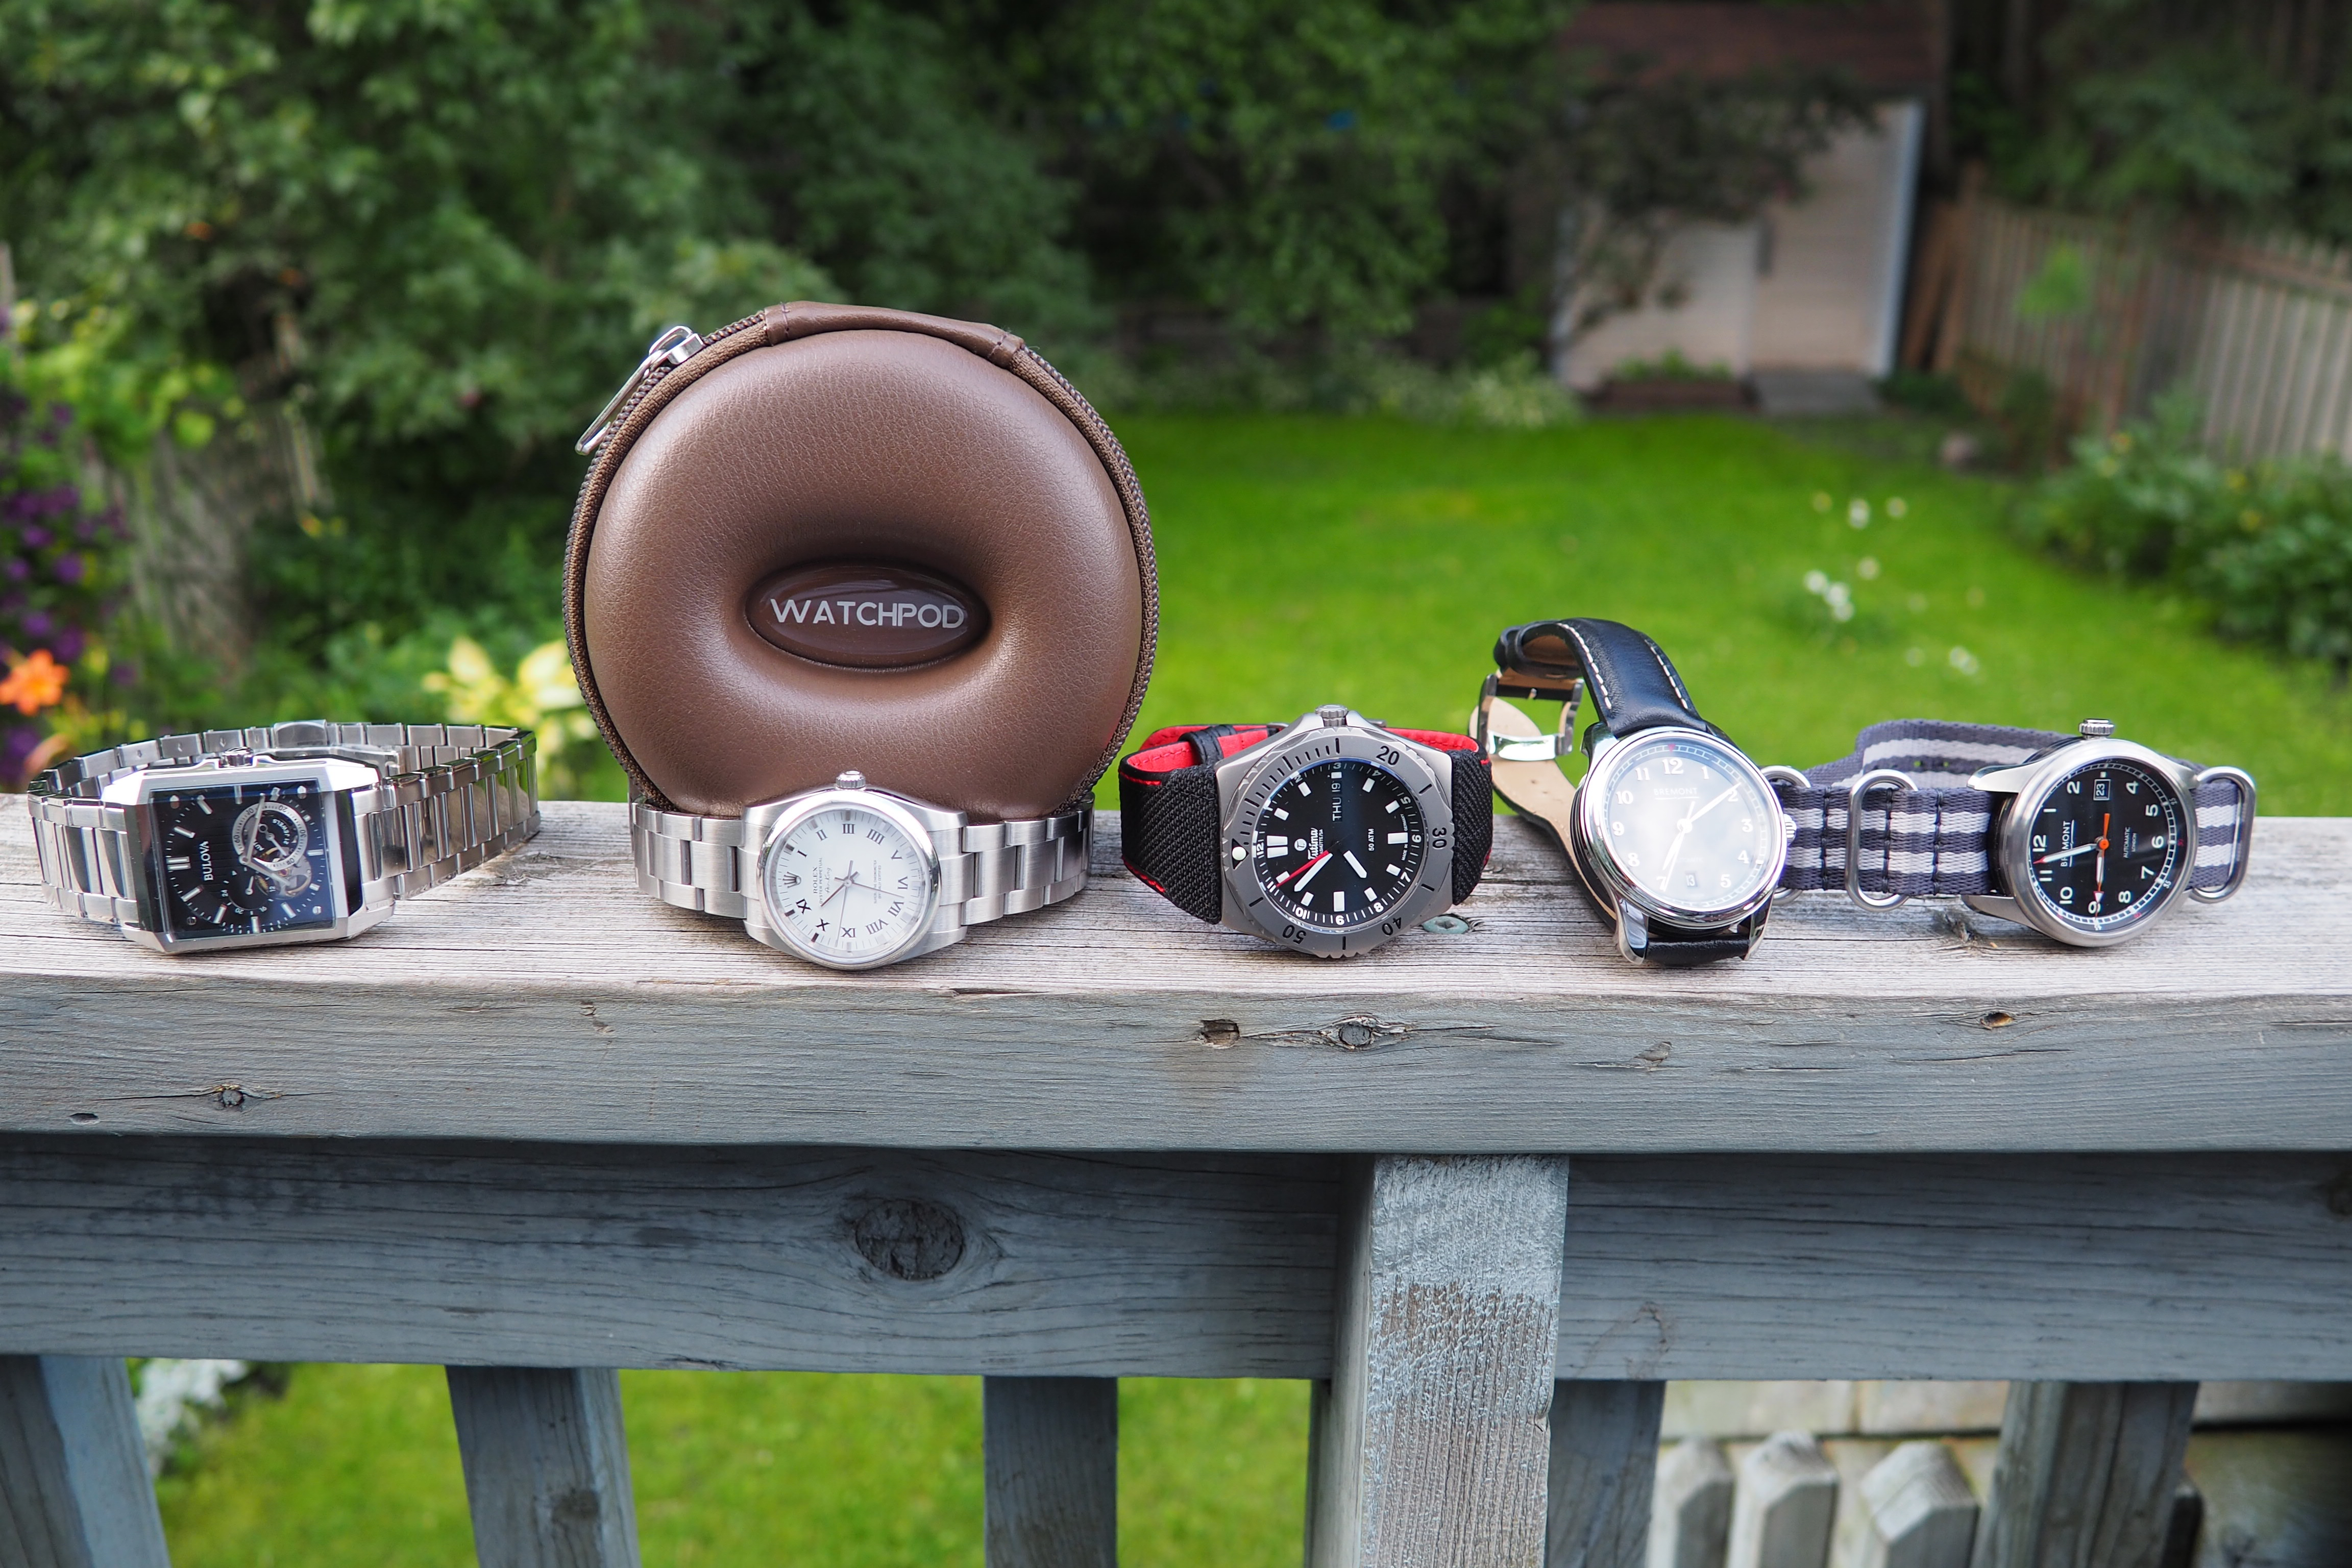 watchpod with some watches